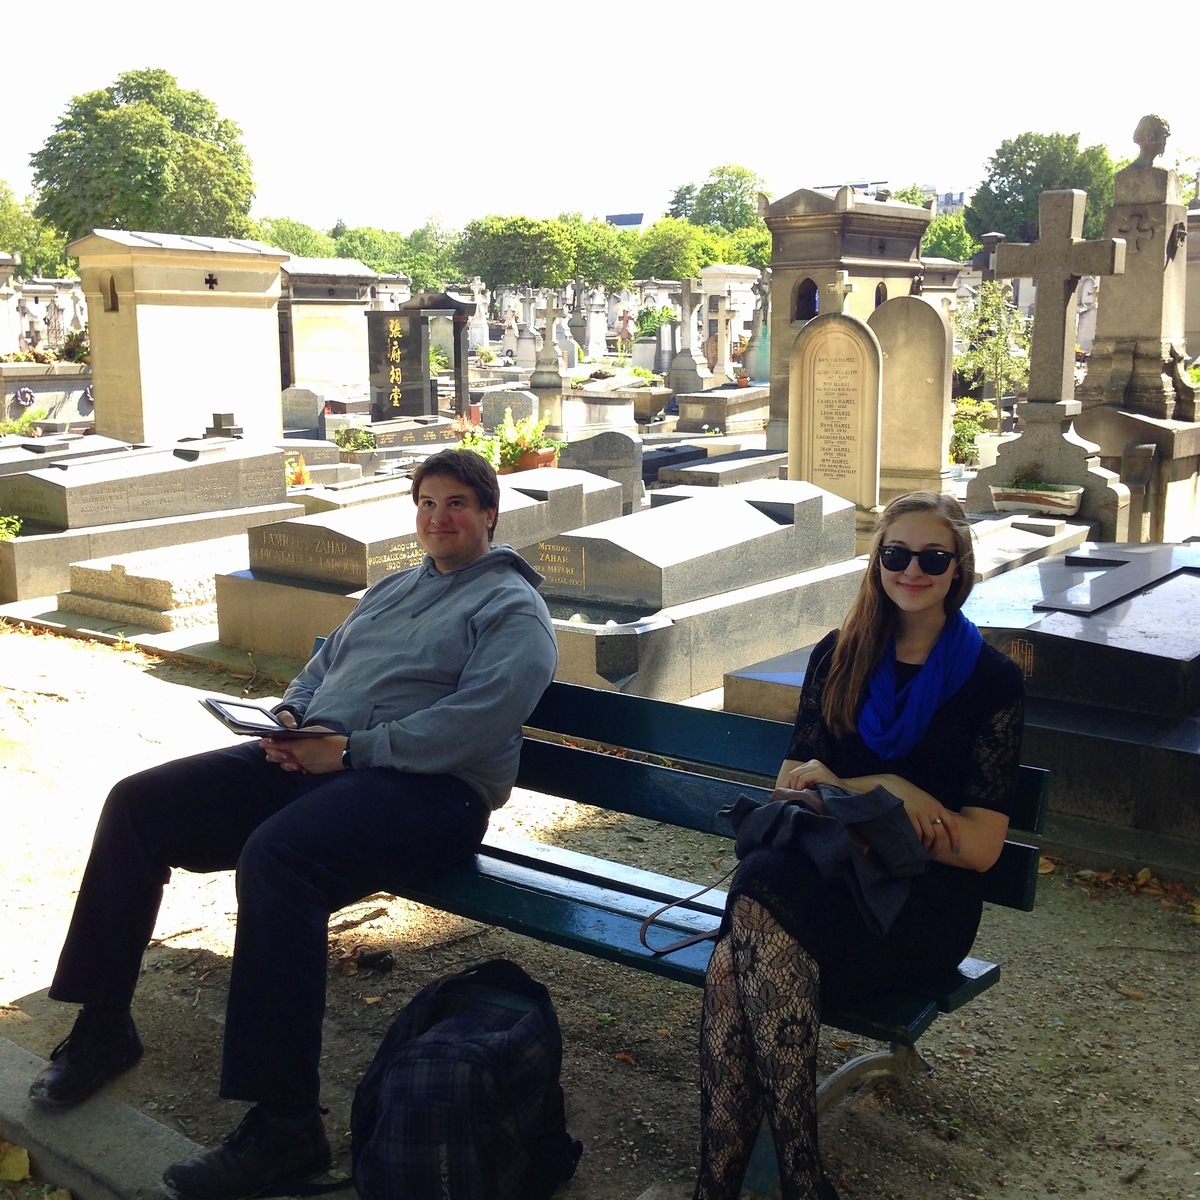 Eric and Michelle Relaxing on a Park Bench in the Montparnasse Cemetery of Paris, France